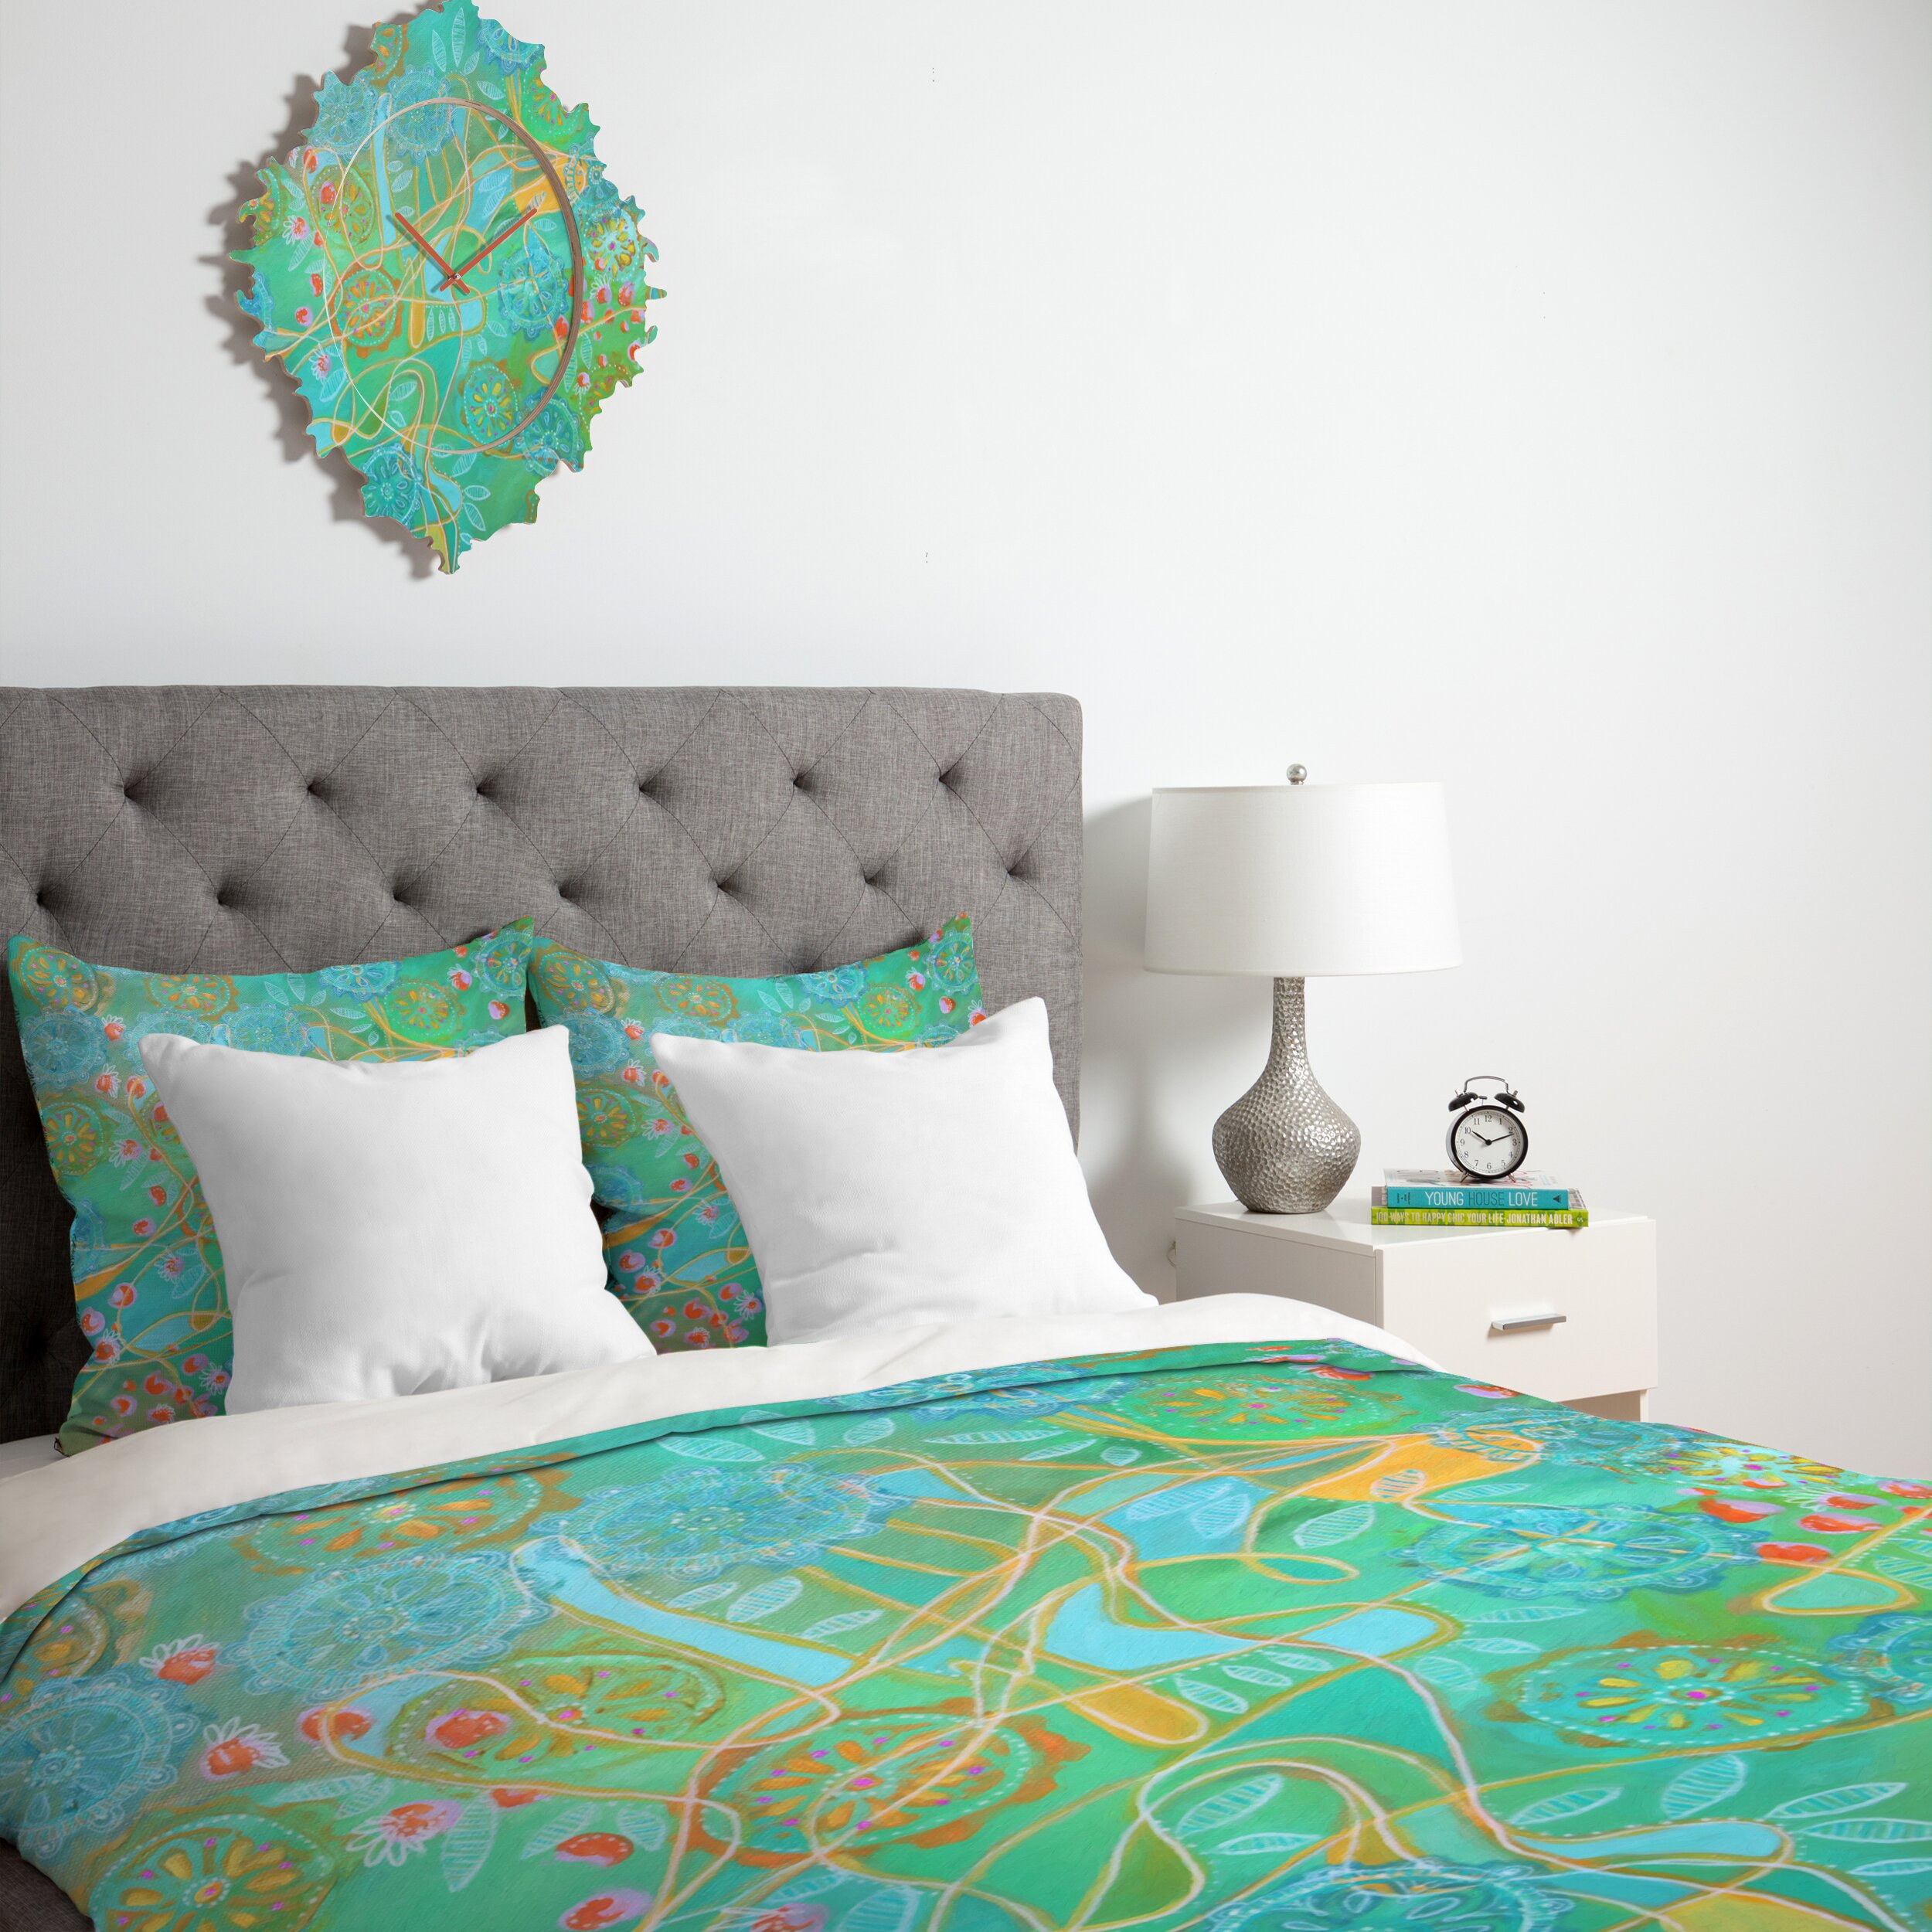 Deny Designs Stephanie Corfee Secret Garden Duvet Cover